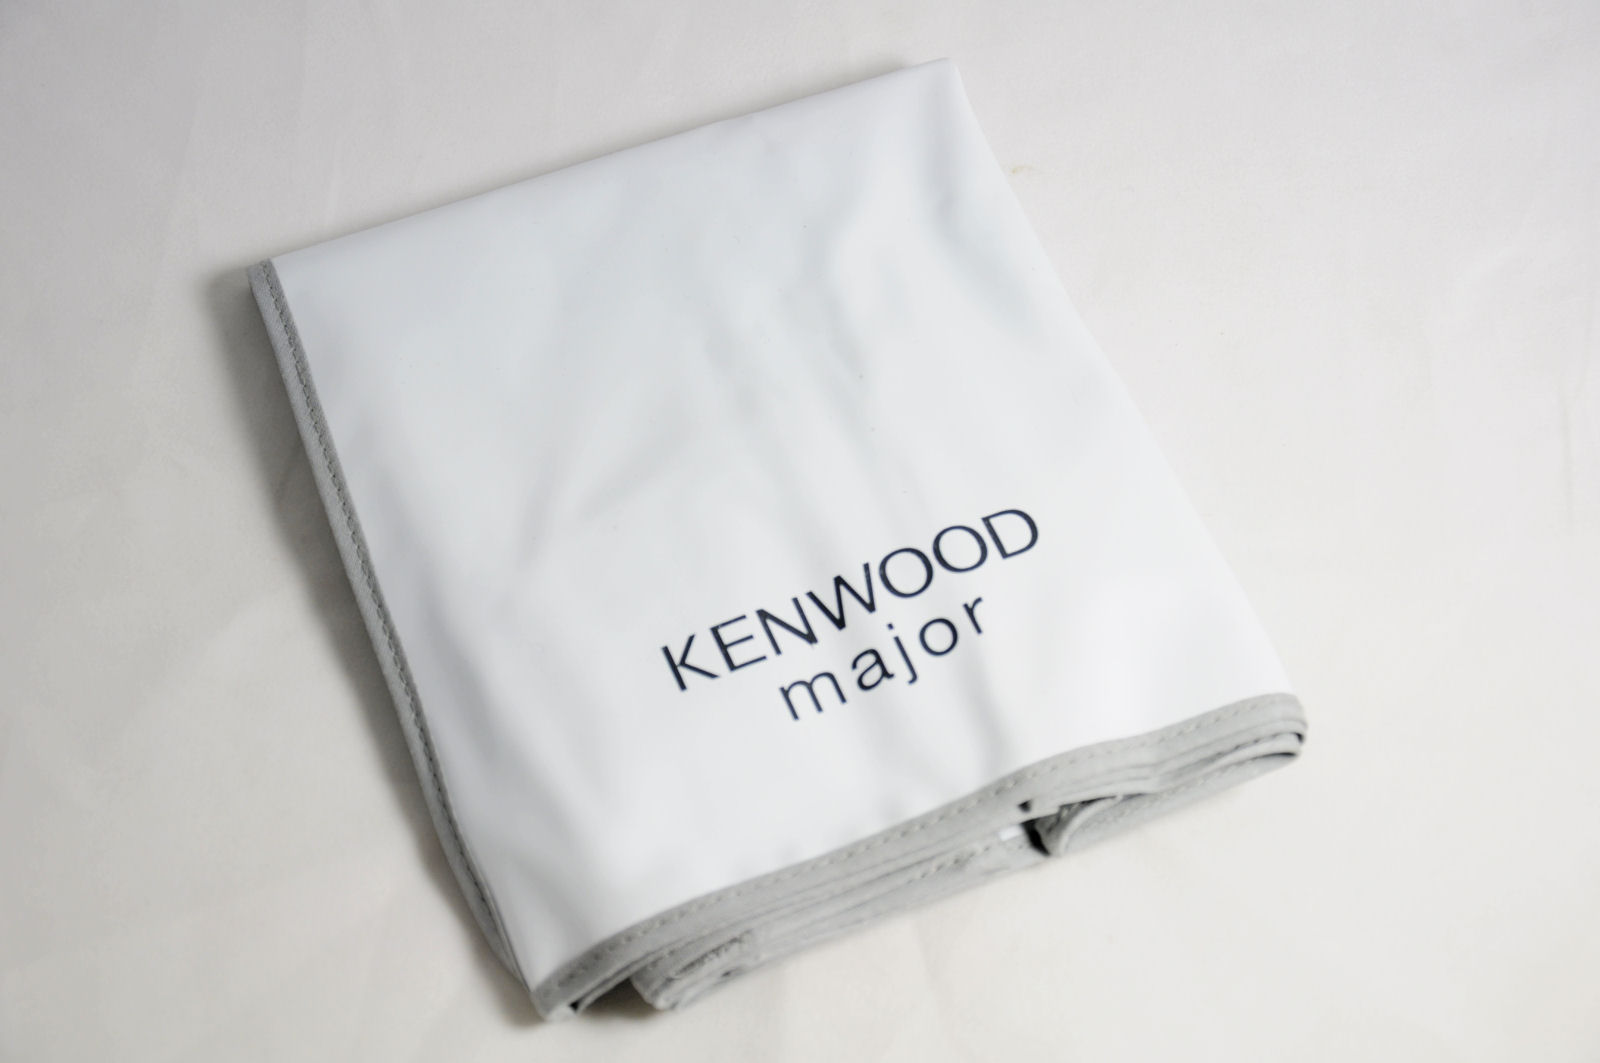 White cover for Kenwood Major